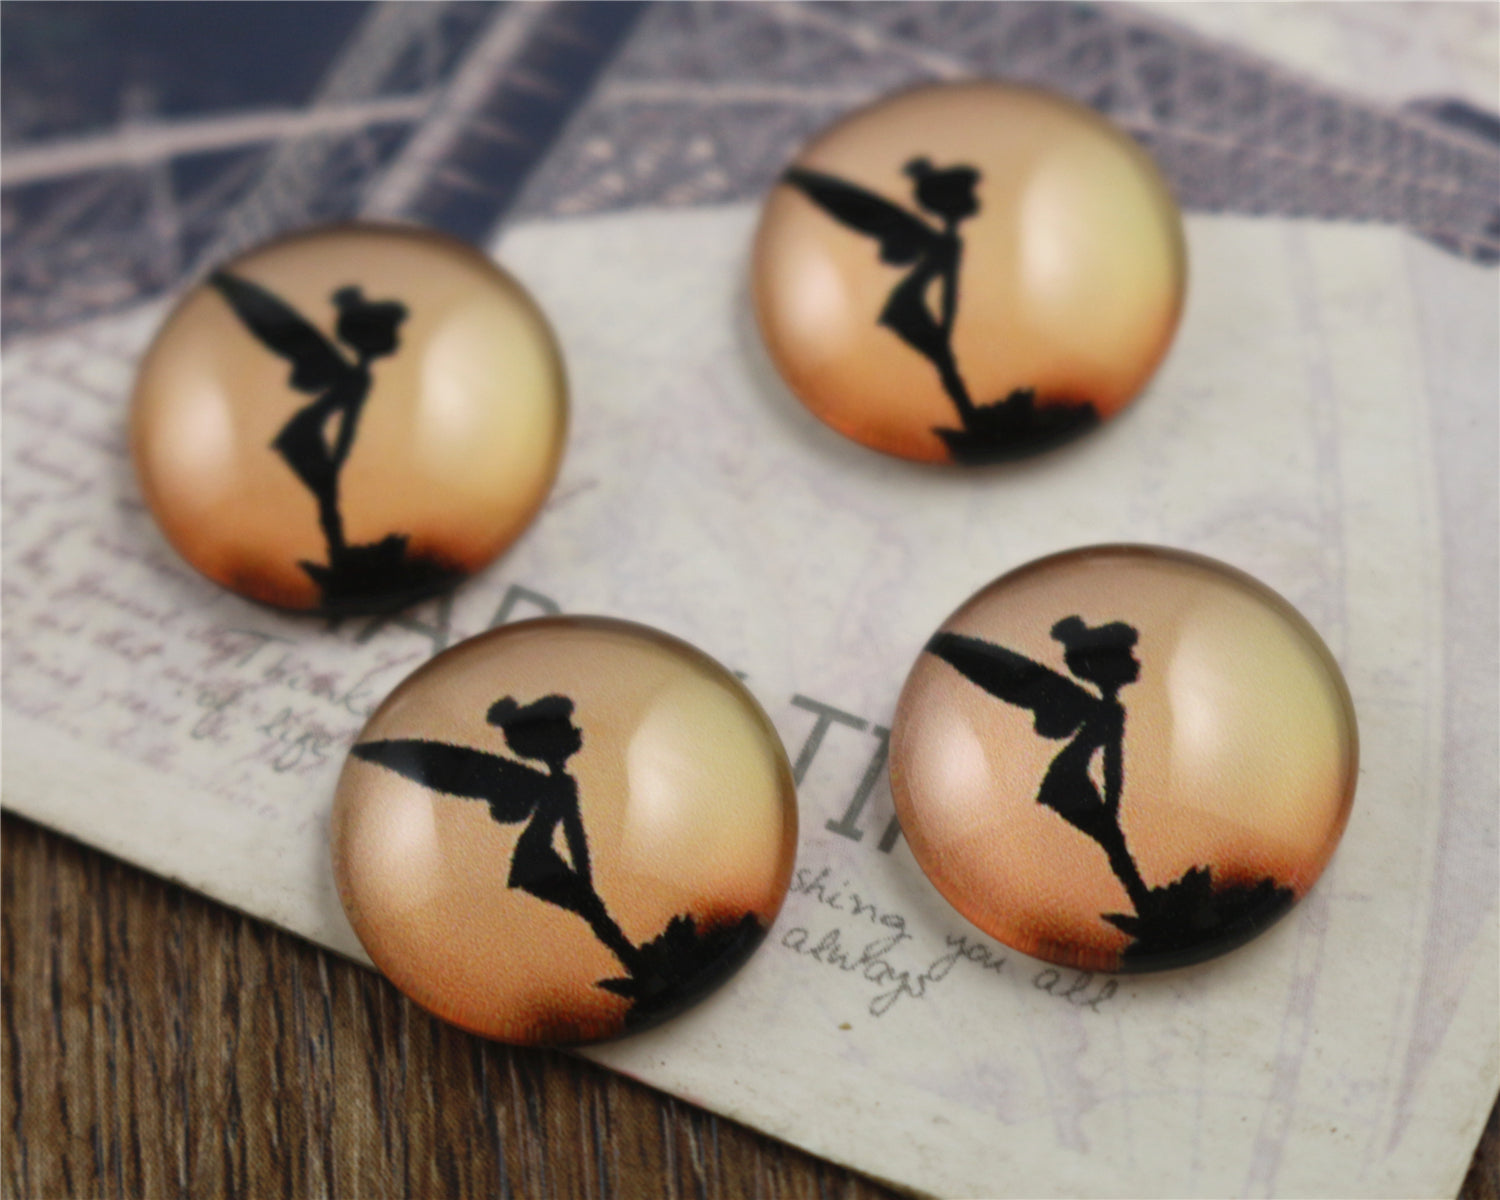 16mm Handmade Round Glass Cabochons Tinkerbell Silhouette Design Pattern Style